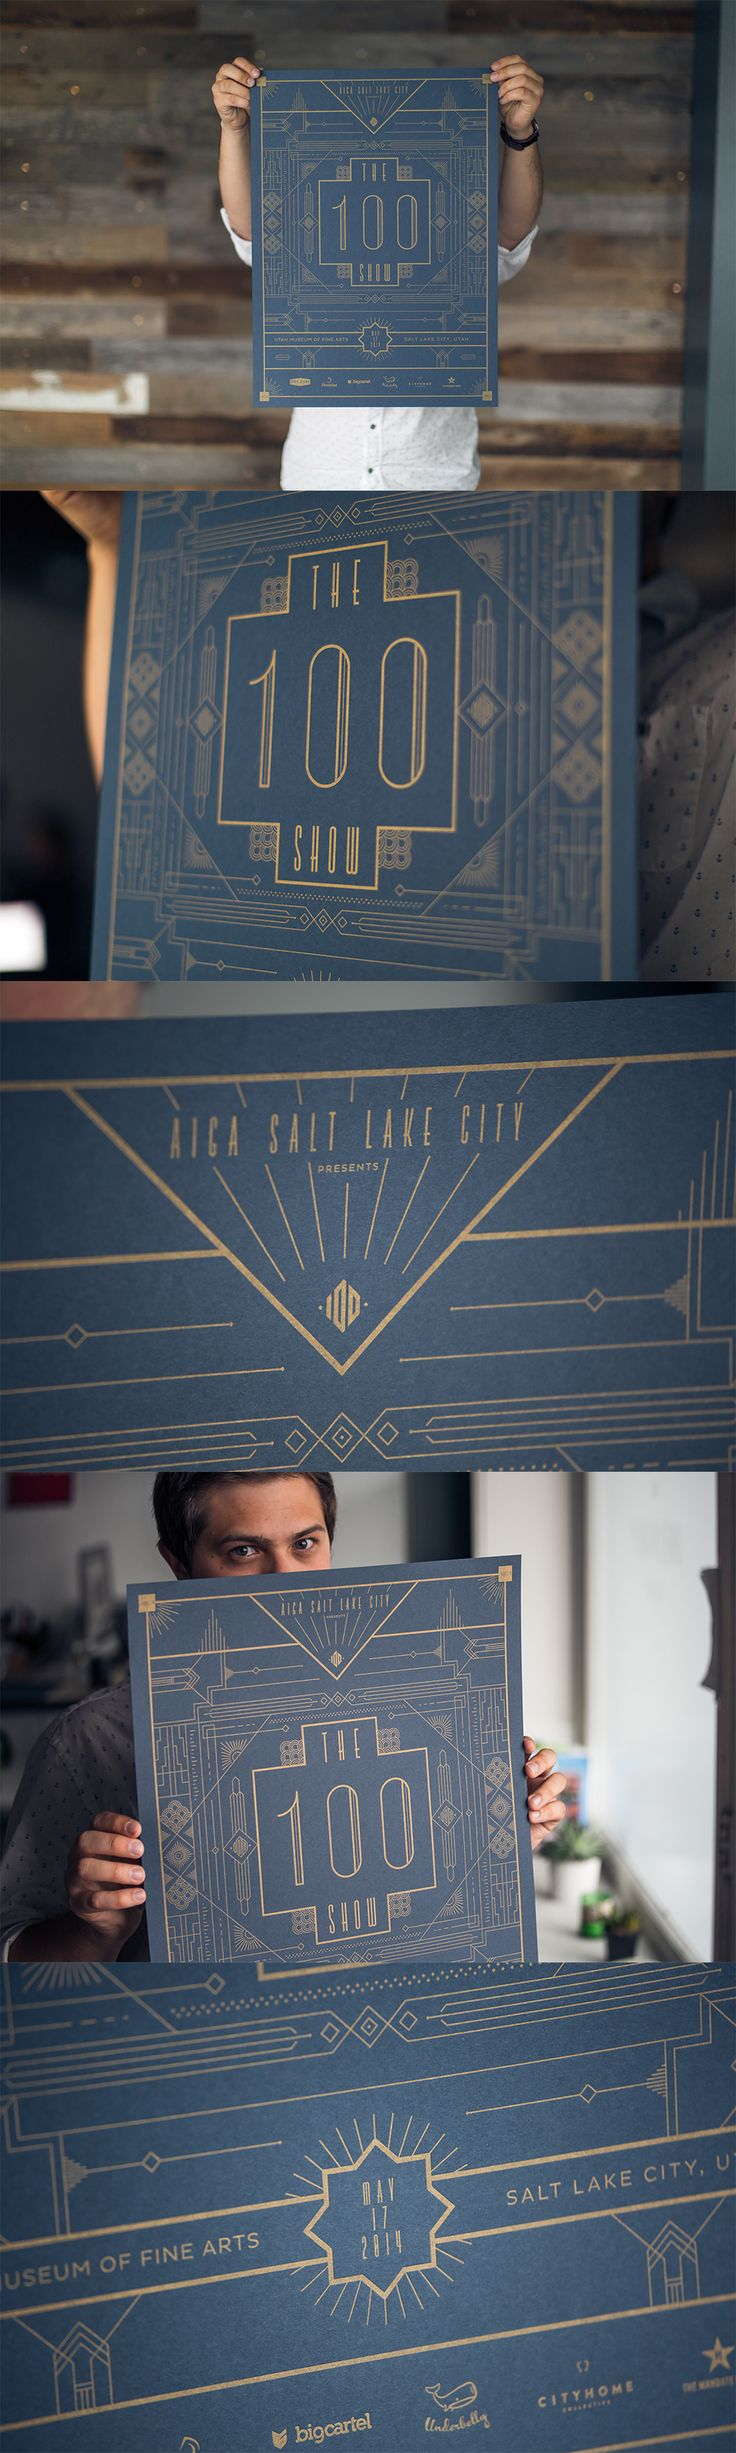 AIGA 100 Show Event Poster // Salt Lake City // Design by Underbelly…